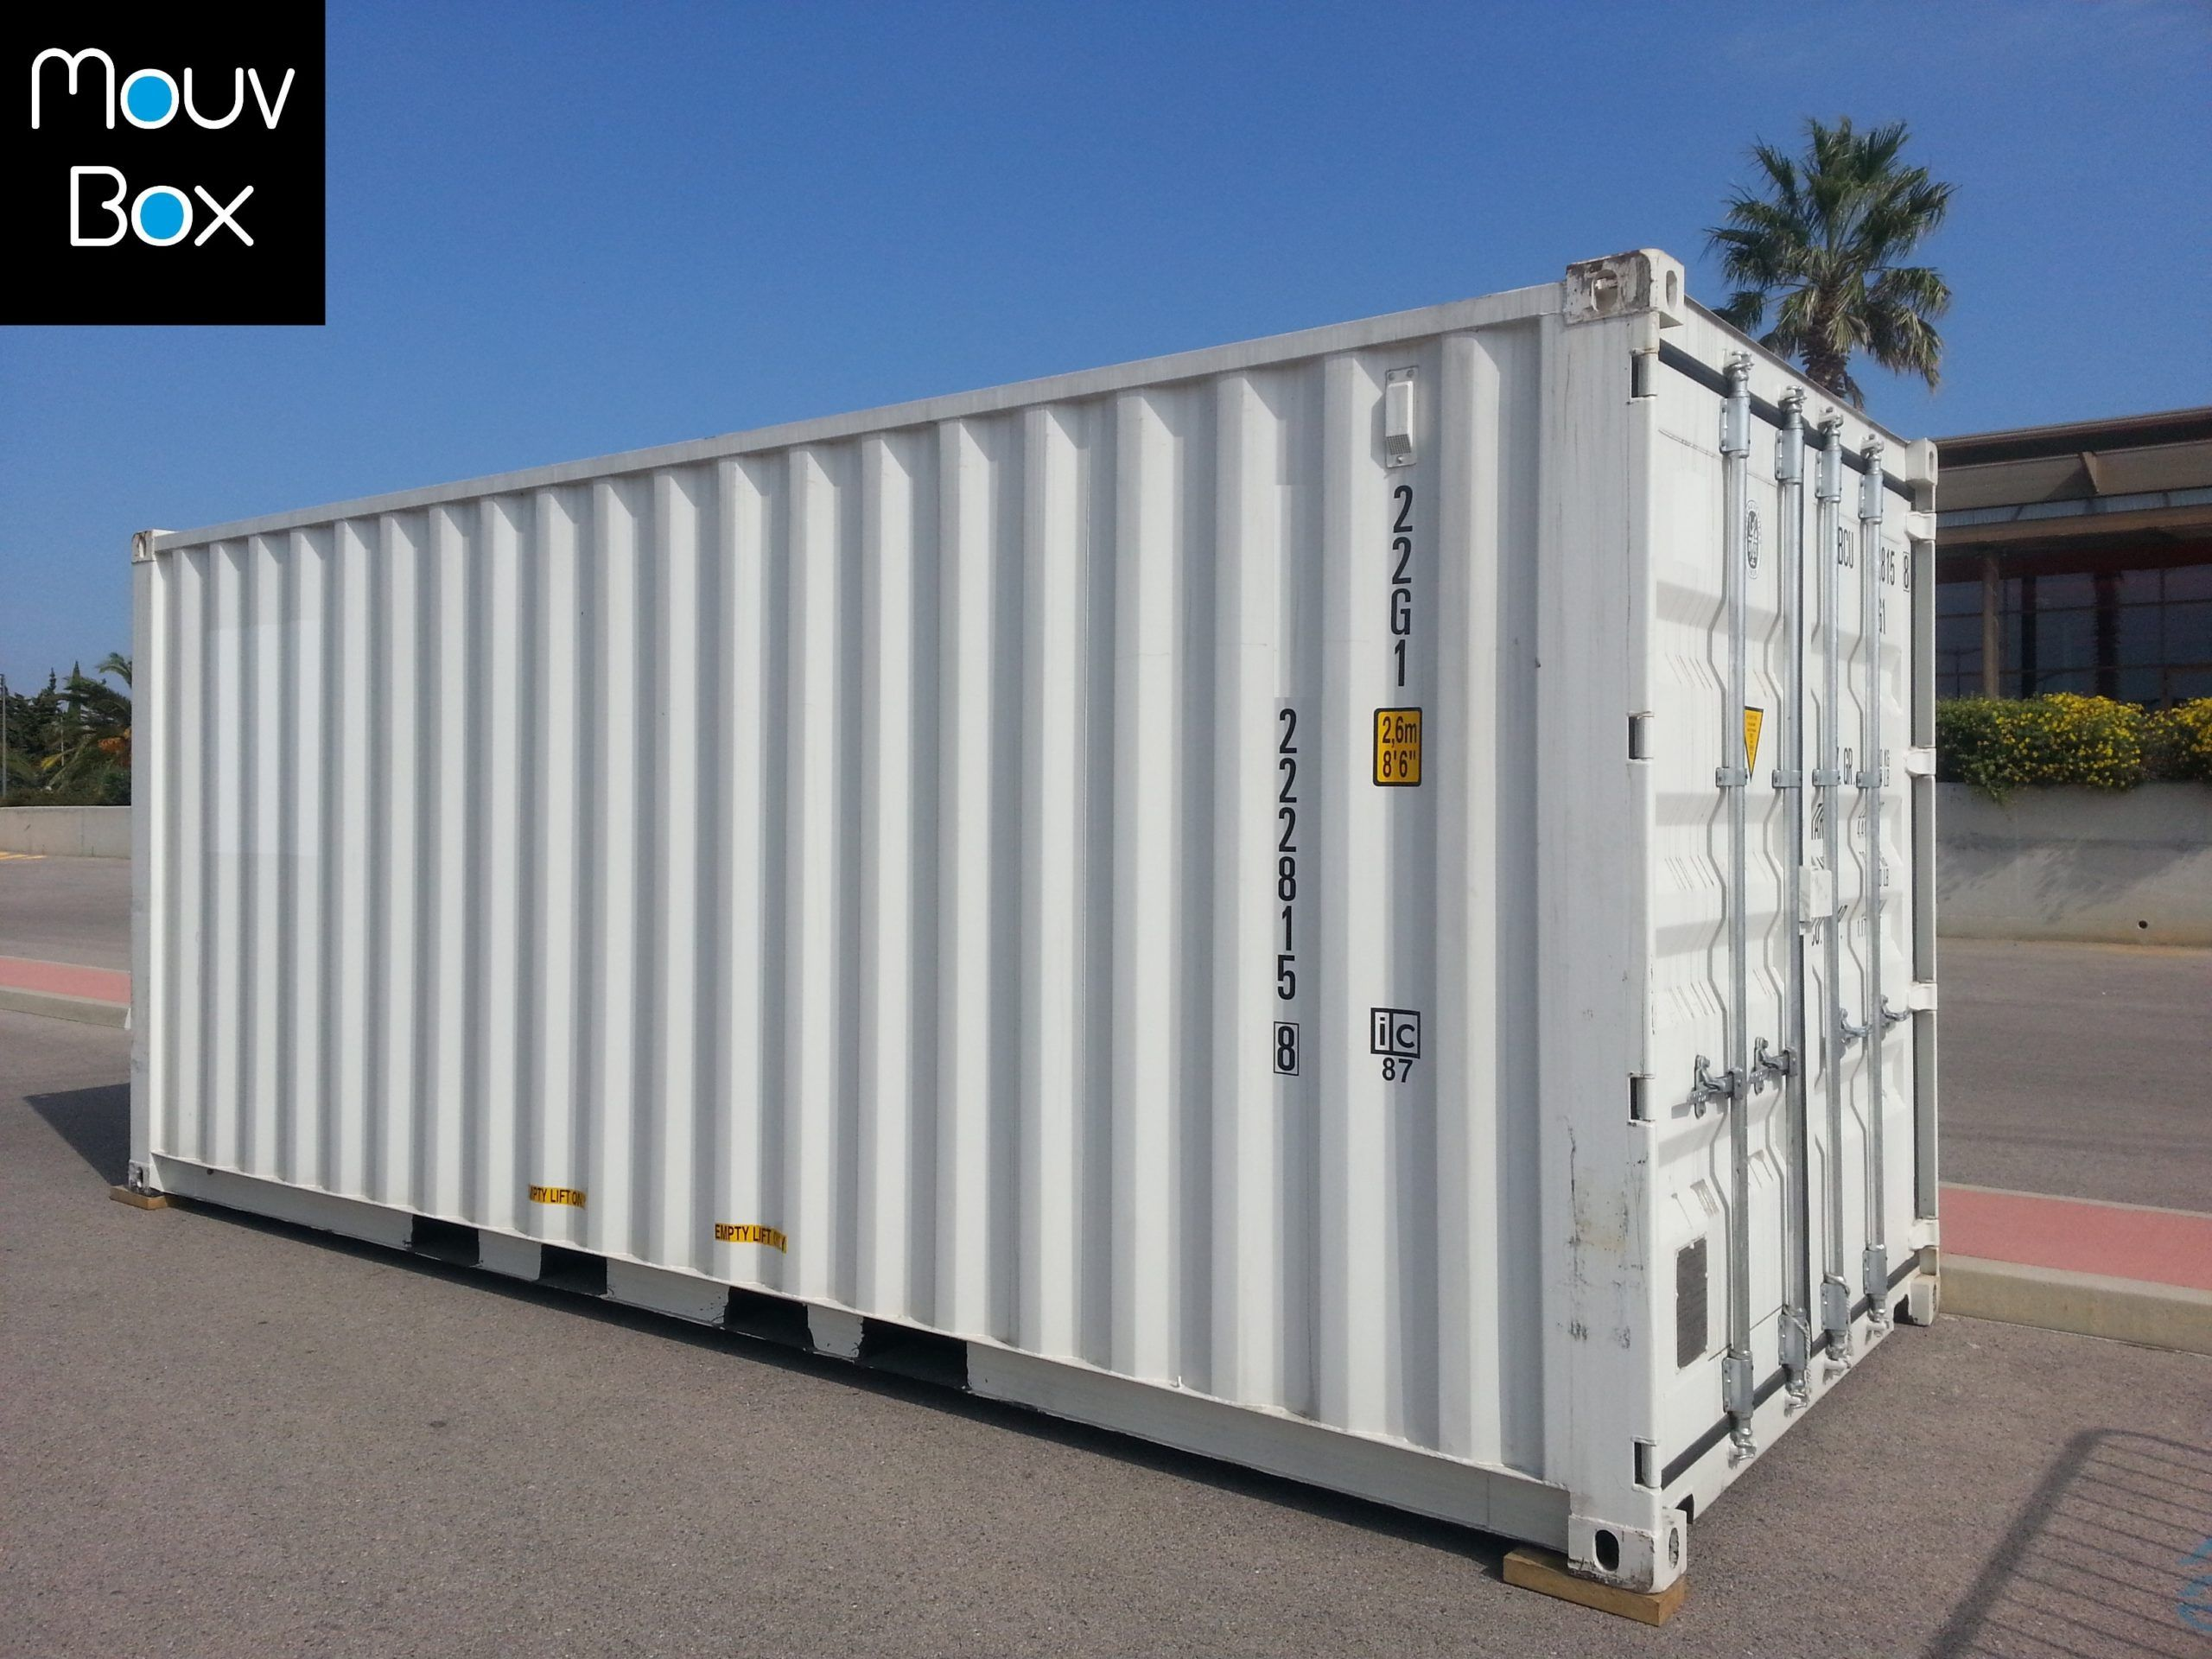 Container maritime 20 pieds neuf ou occasion mouvbox france for Acheter un container habitable